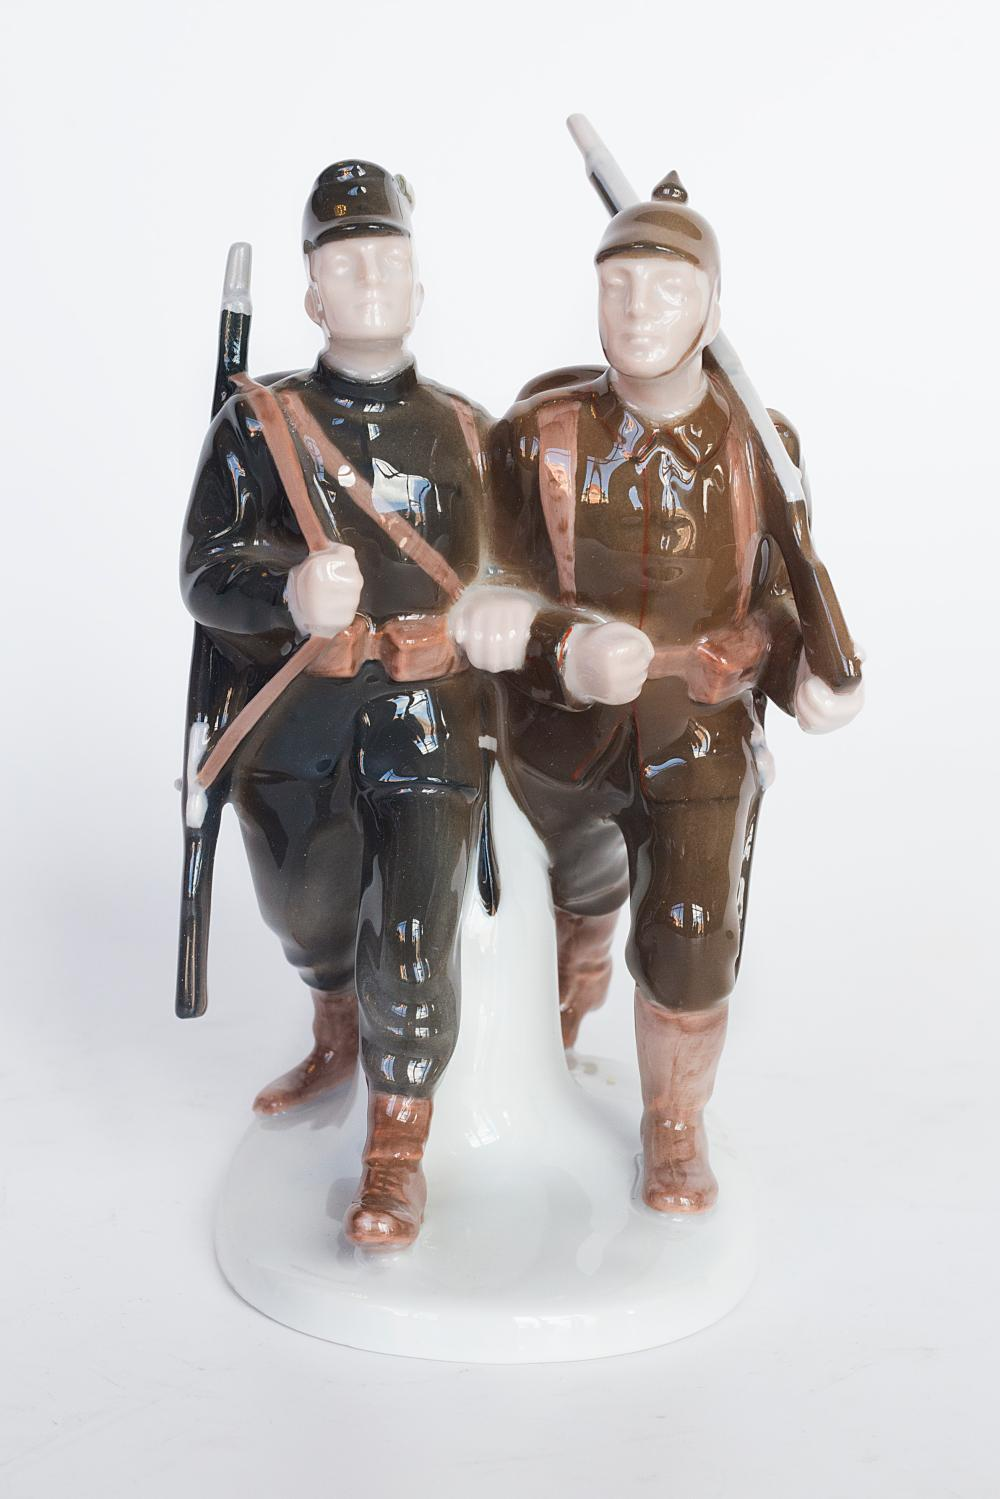 Rare Art Deco figurine portraying tow soldiers by Albert Caasmann for Rosenthal